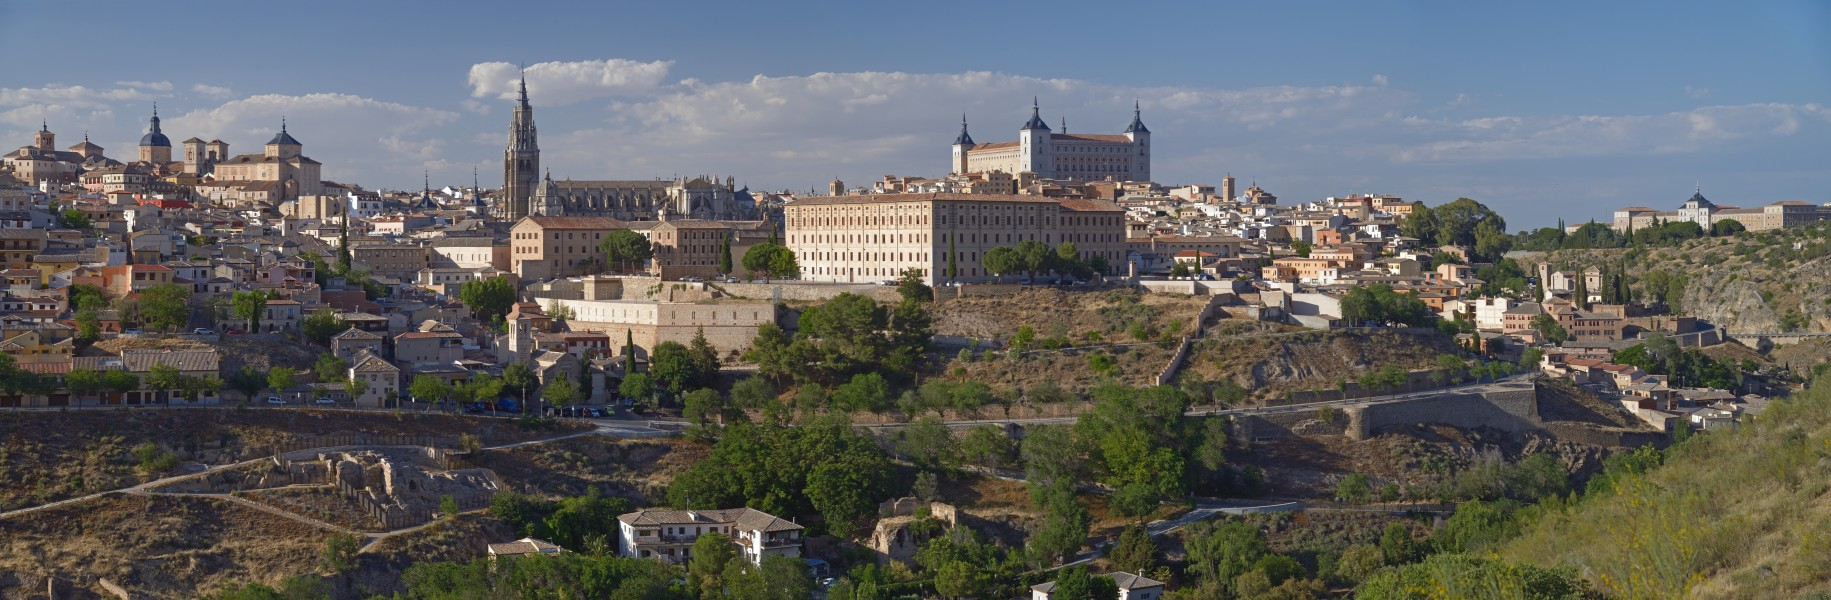 Panorama of Toledo at sunset. View from the south